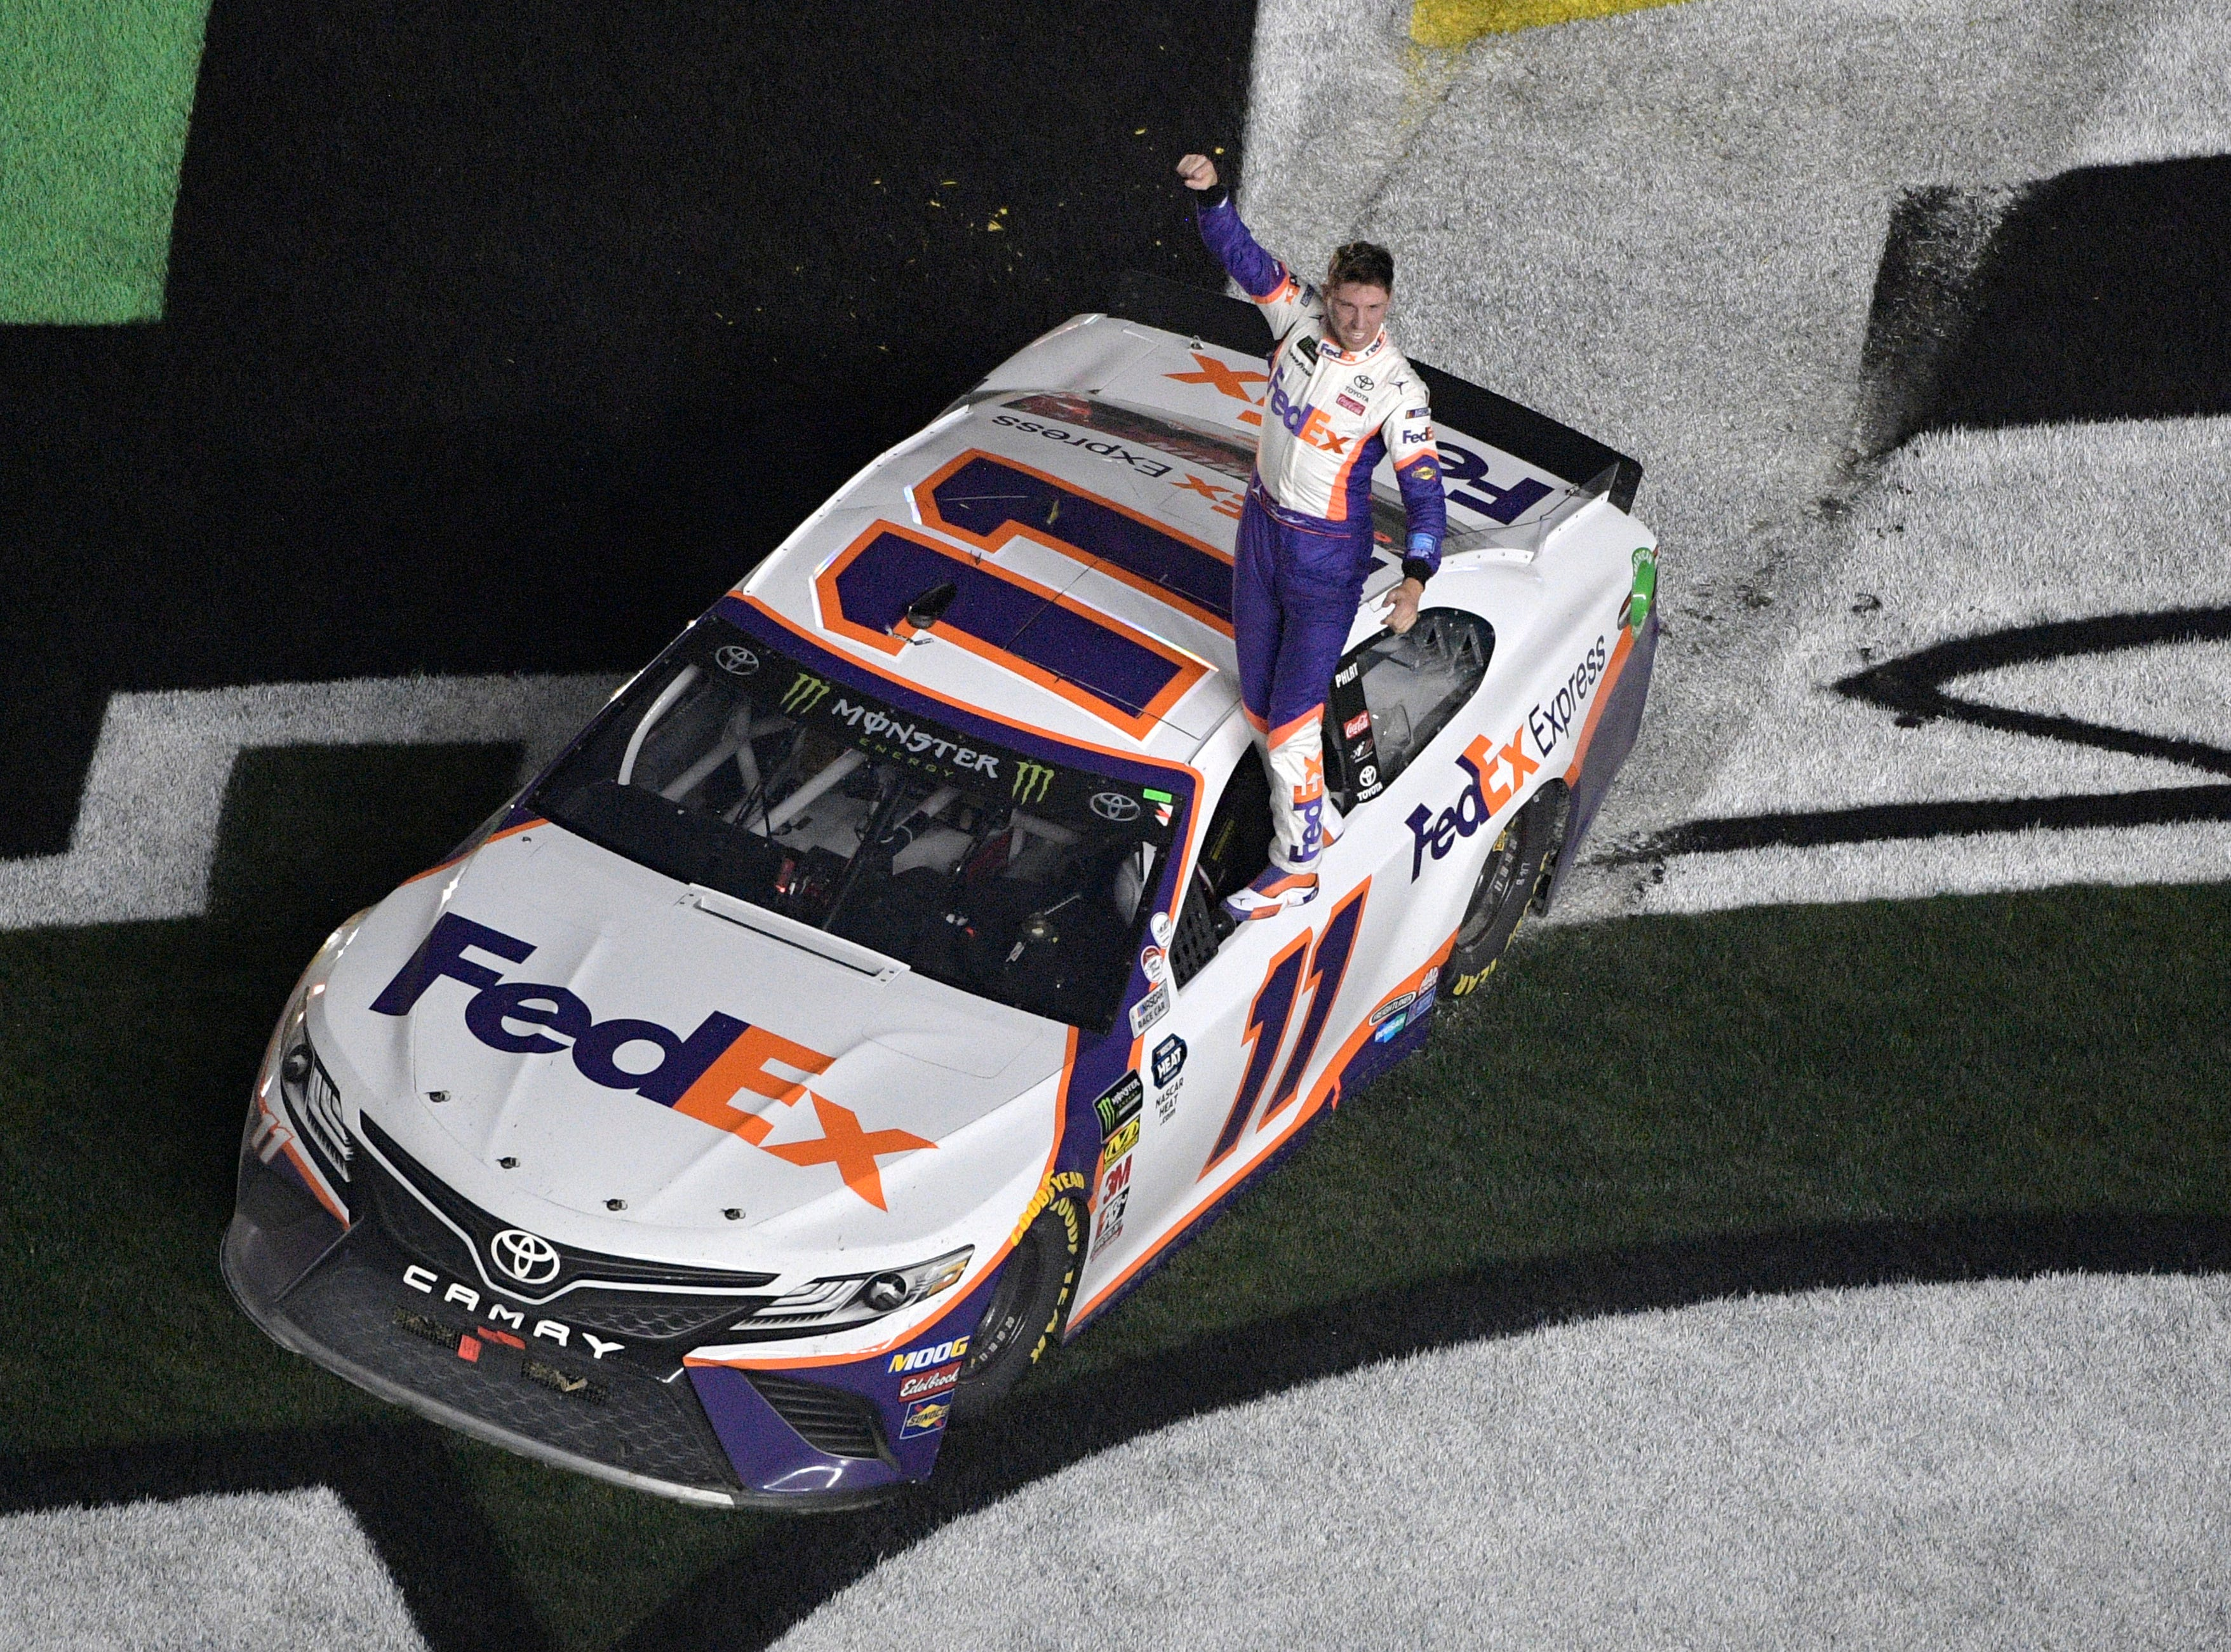 Denny Hamlin (11) celebrates after winning a NASCAR Daytona 500 auto race at Daytona International Speedway.